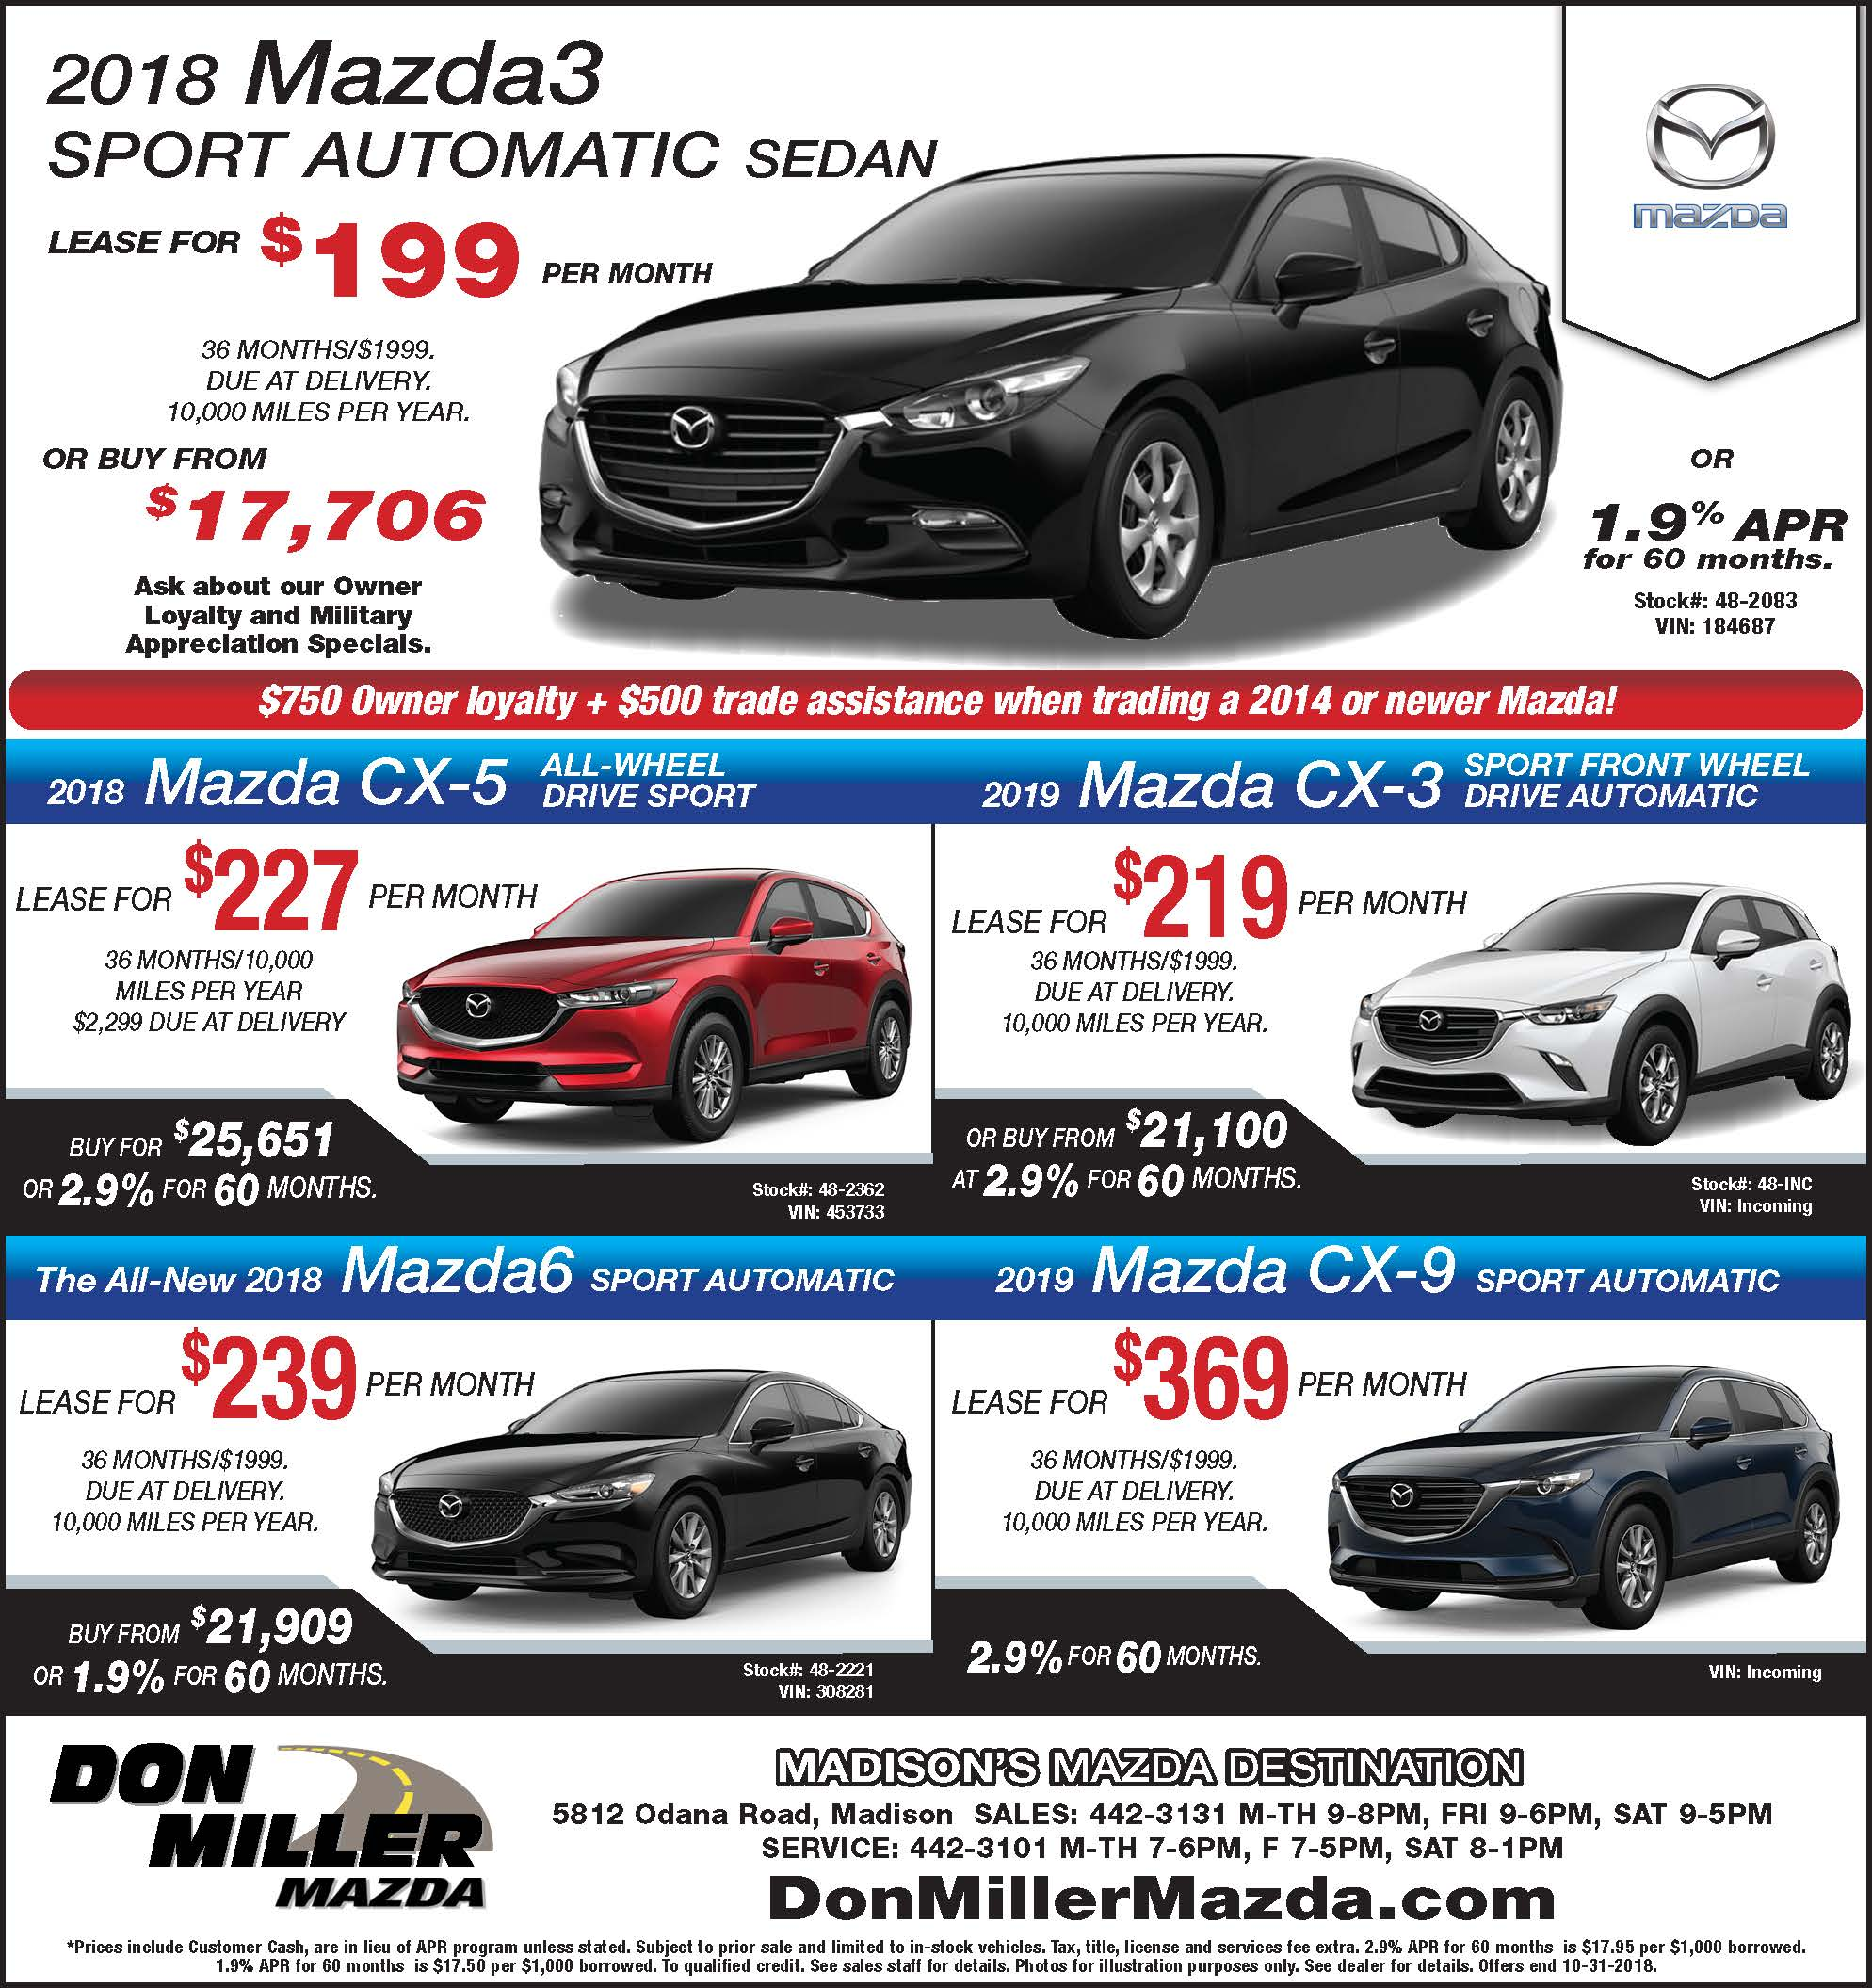 Don Miller Mazda Provides A Selection Of Featured Inventory, Representing  New And Popular Items At Competitive Prices. Please Take A Moment To  Investigate ...